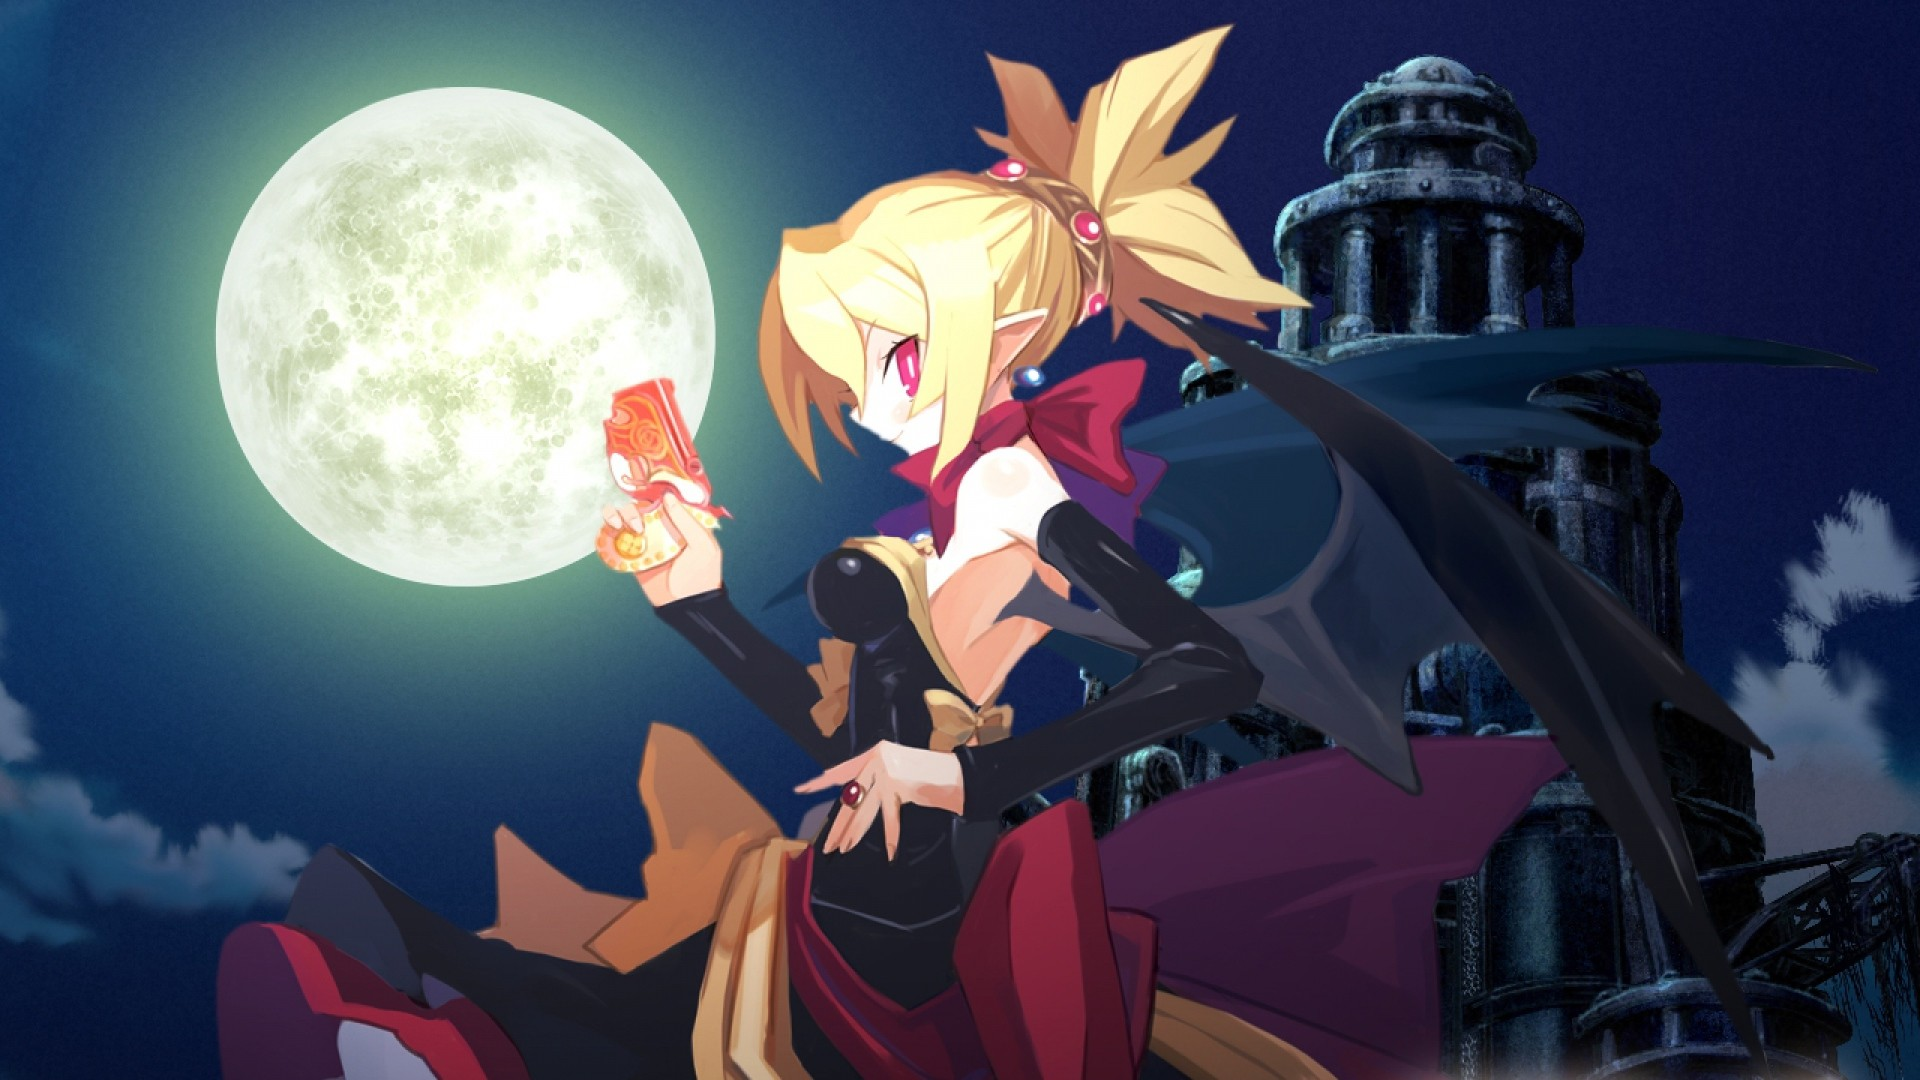 1920x1080 Get the latest demon disgaea 2, girl, dress news, pictures and videos and  learn all about demon disgaea 2, girl, dress from wallpapers4u.org, your  wallpaper ...